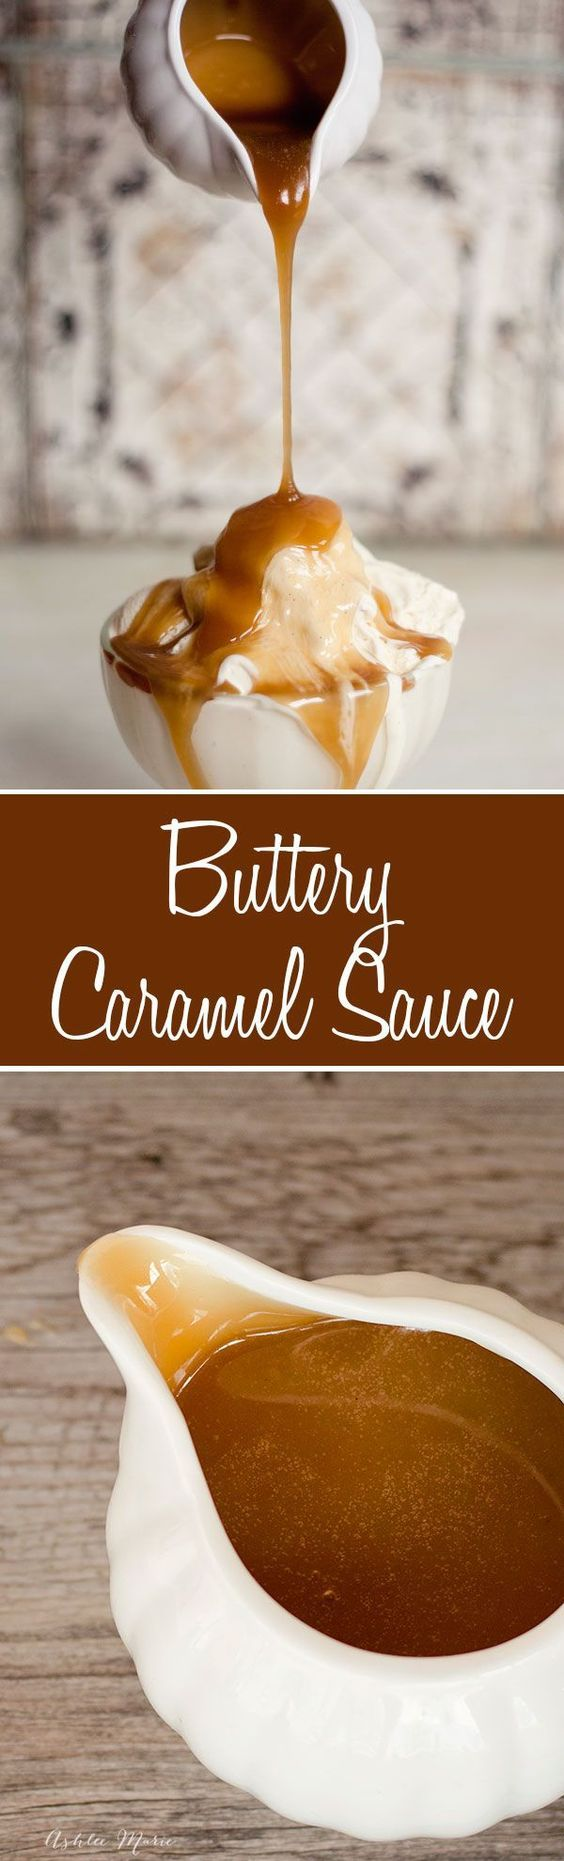 this homemade caramel sauce is buttery perfection I eat it straight from the container on ice cream cheesecake and more